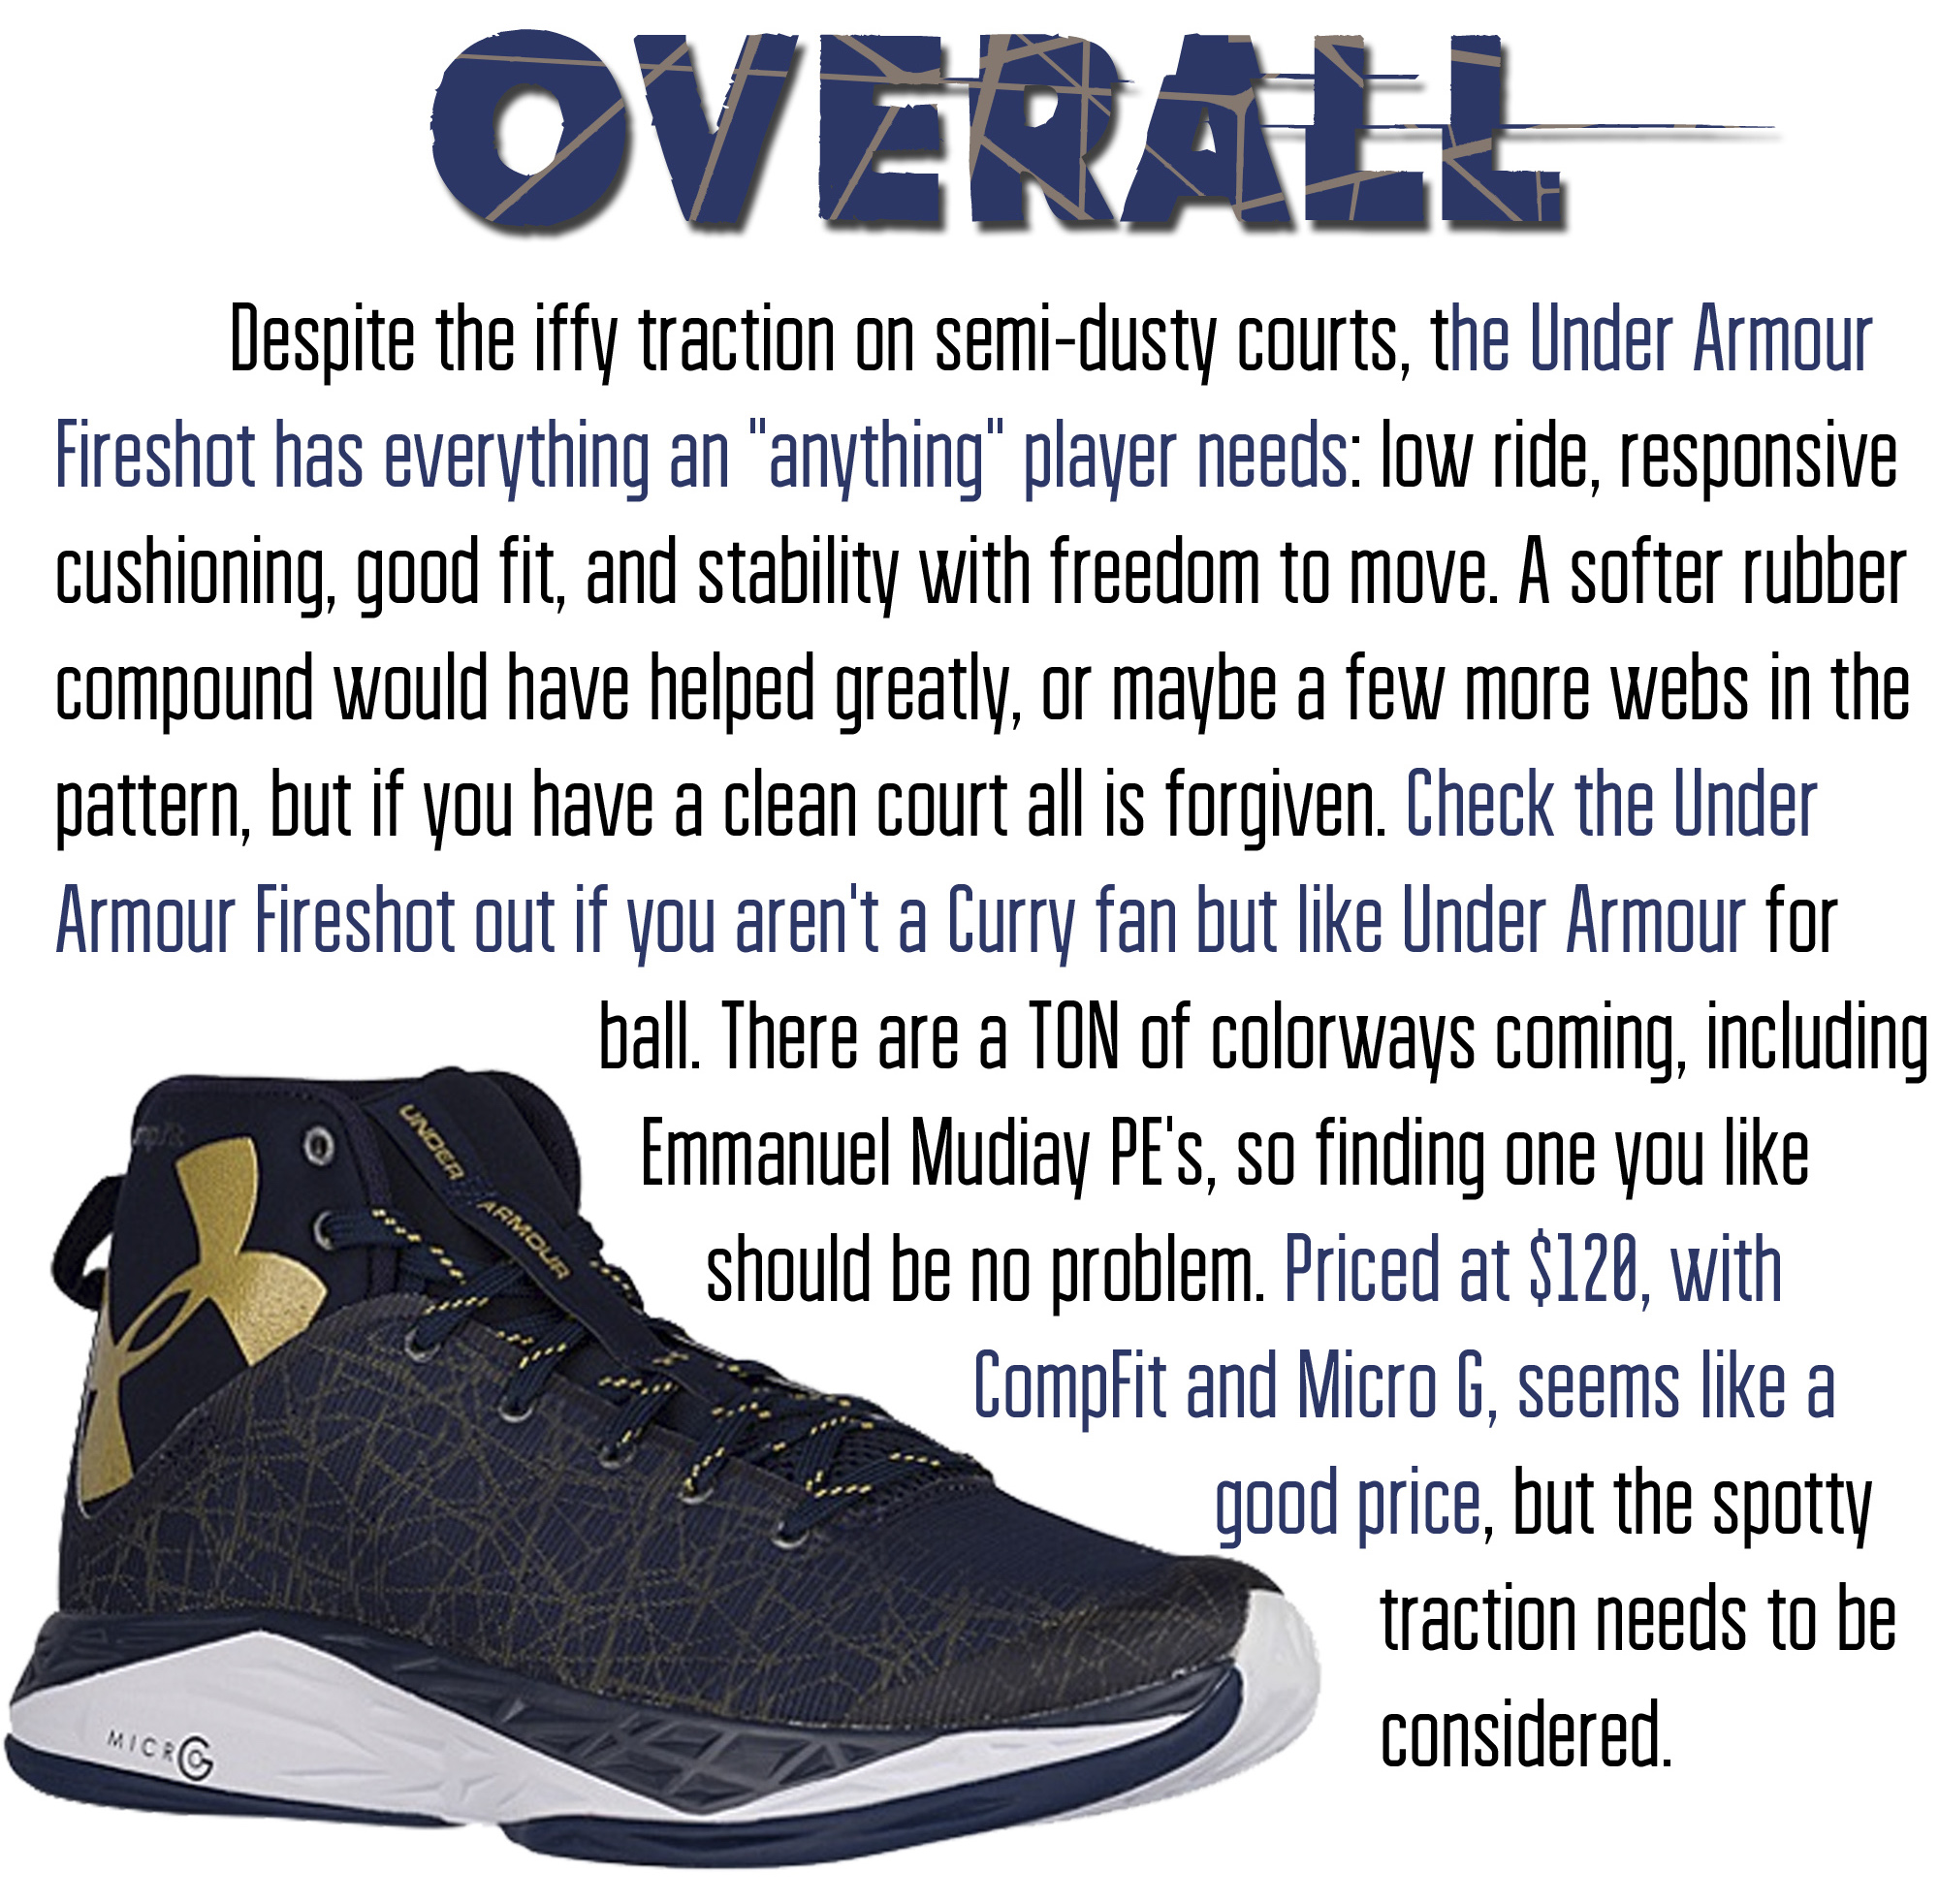 Under armour fireshot performance review 7